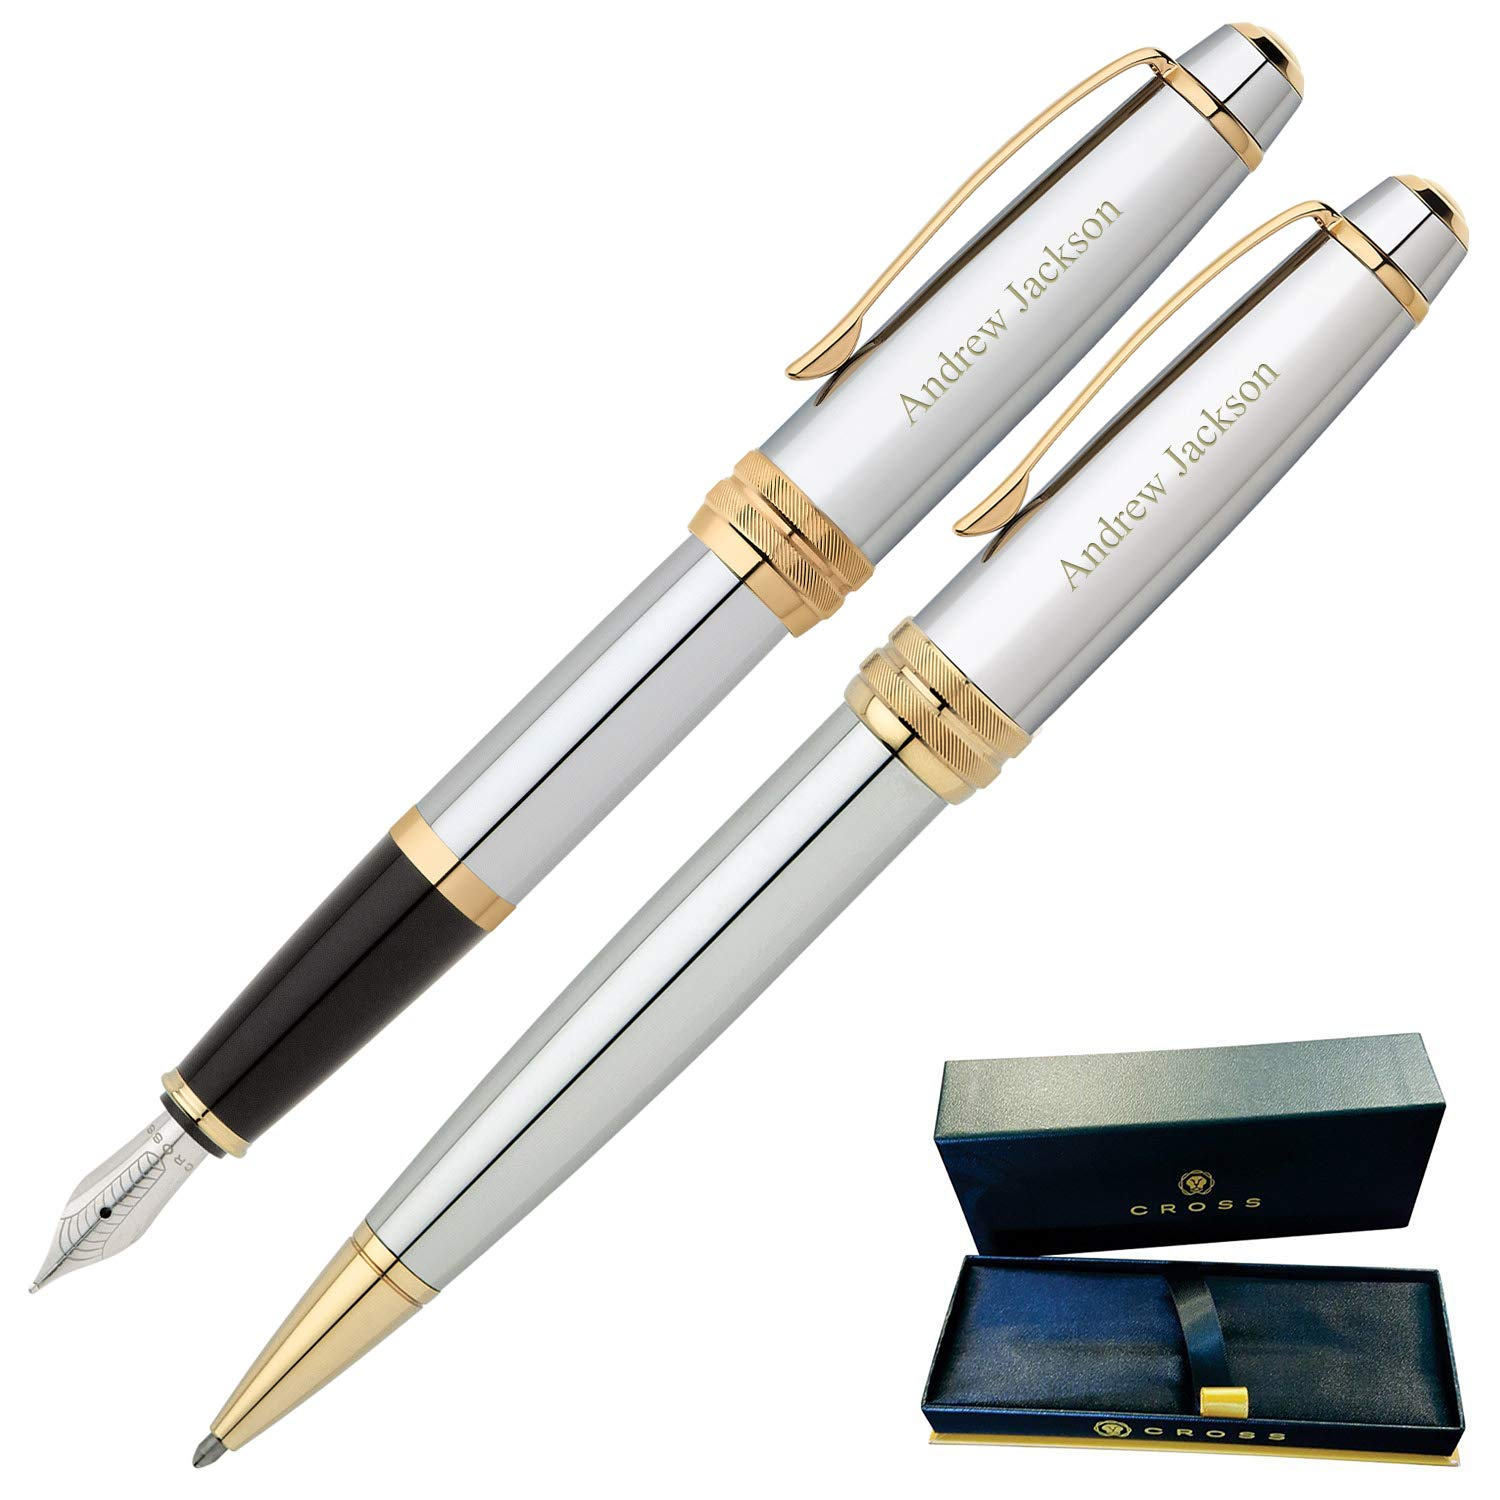 Dayspring Pens | Engraved/Personalized Cross Bailey Medalist Ballpoint and Fountain Gift Pen Set. Custom Engraved Case Included by Dayspring Pens (Image #3)